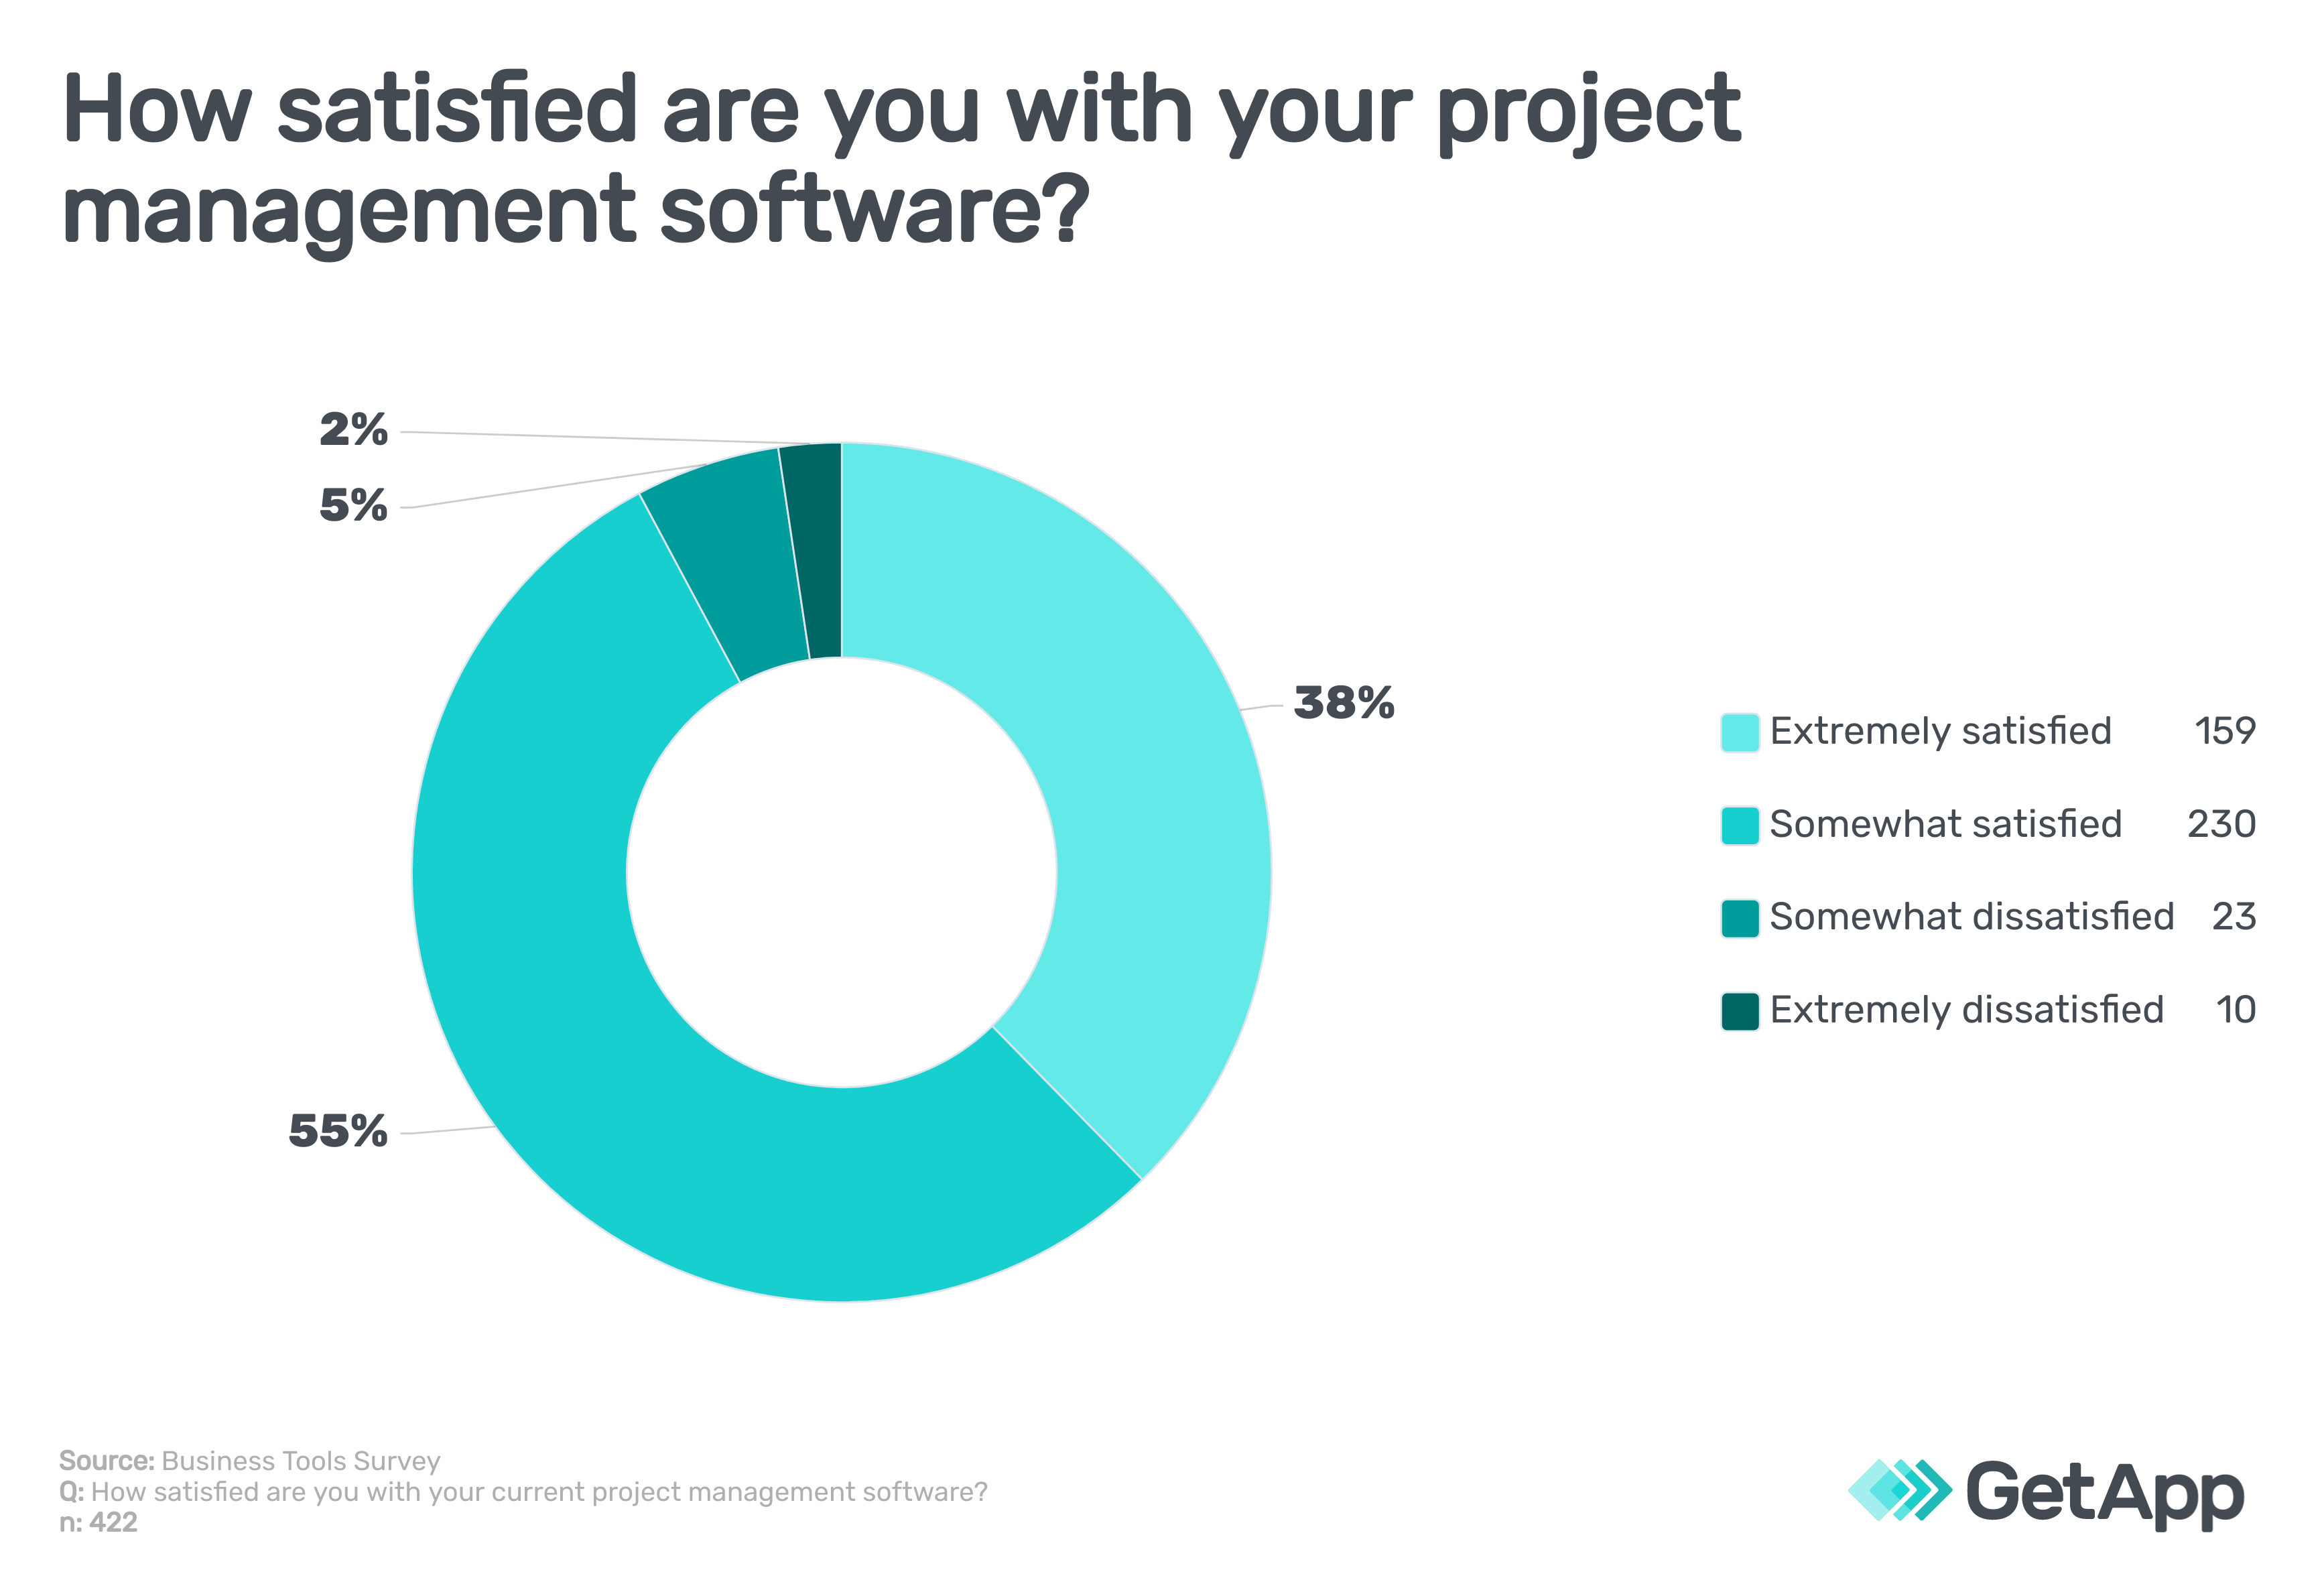 How satisfied are you with your project management software?